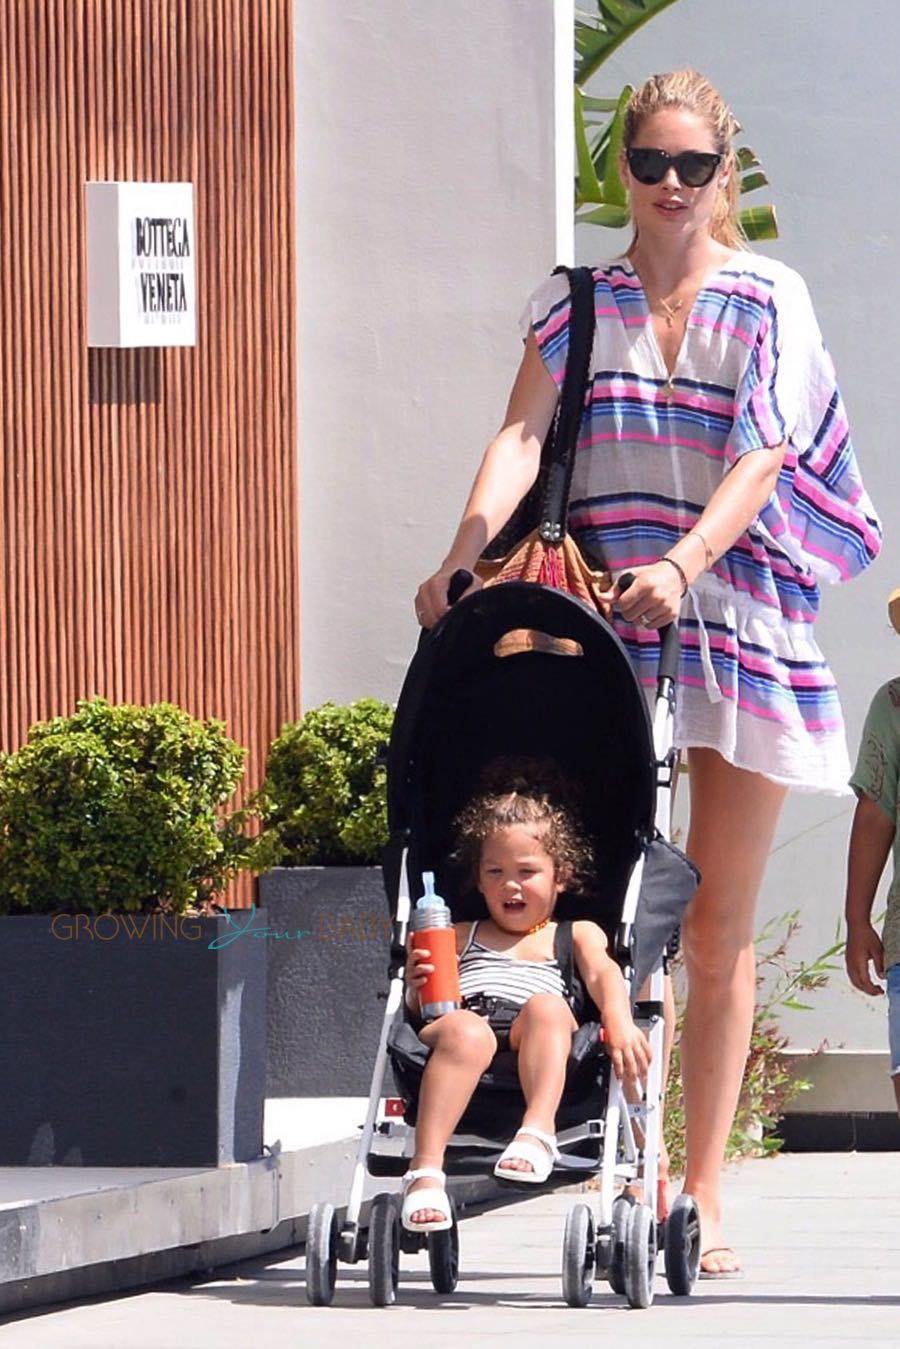 Kroes with her daughter Myllena in Ibiza